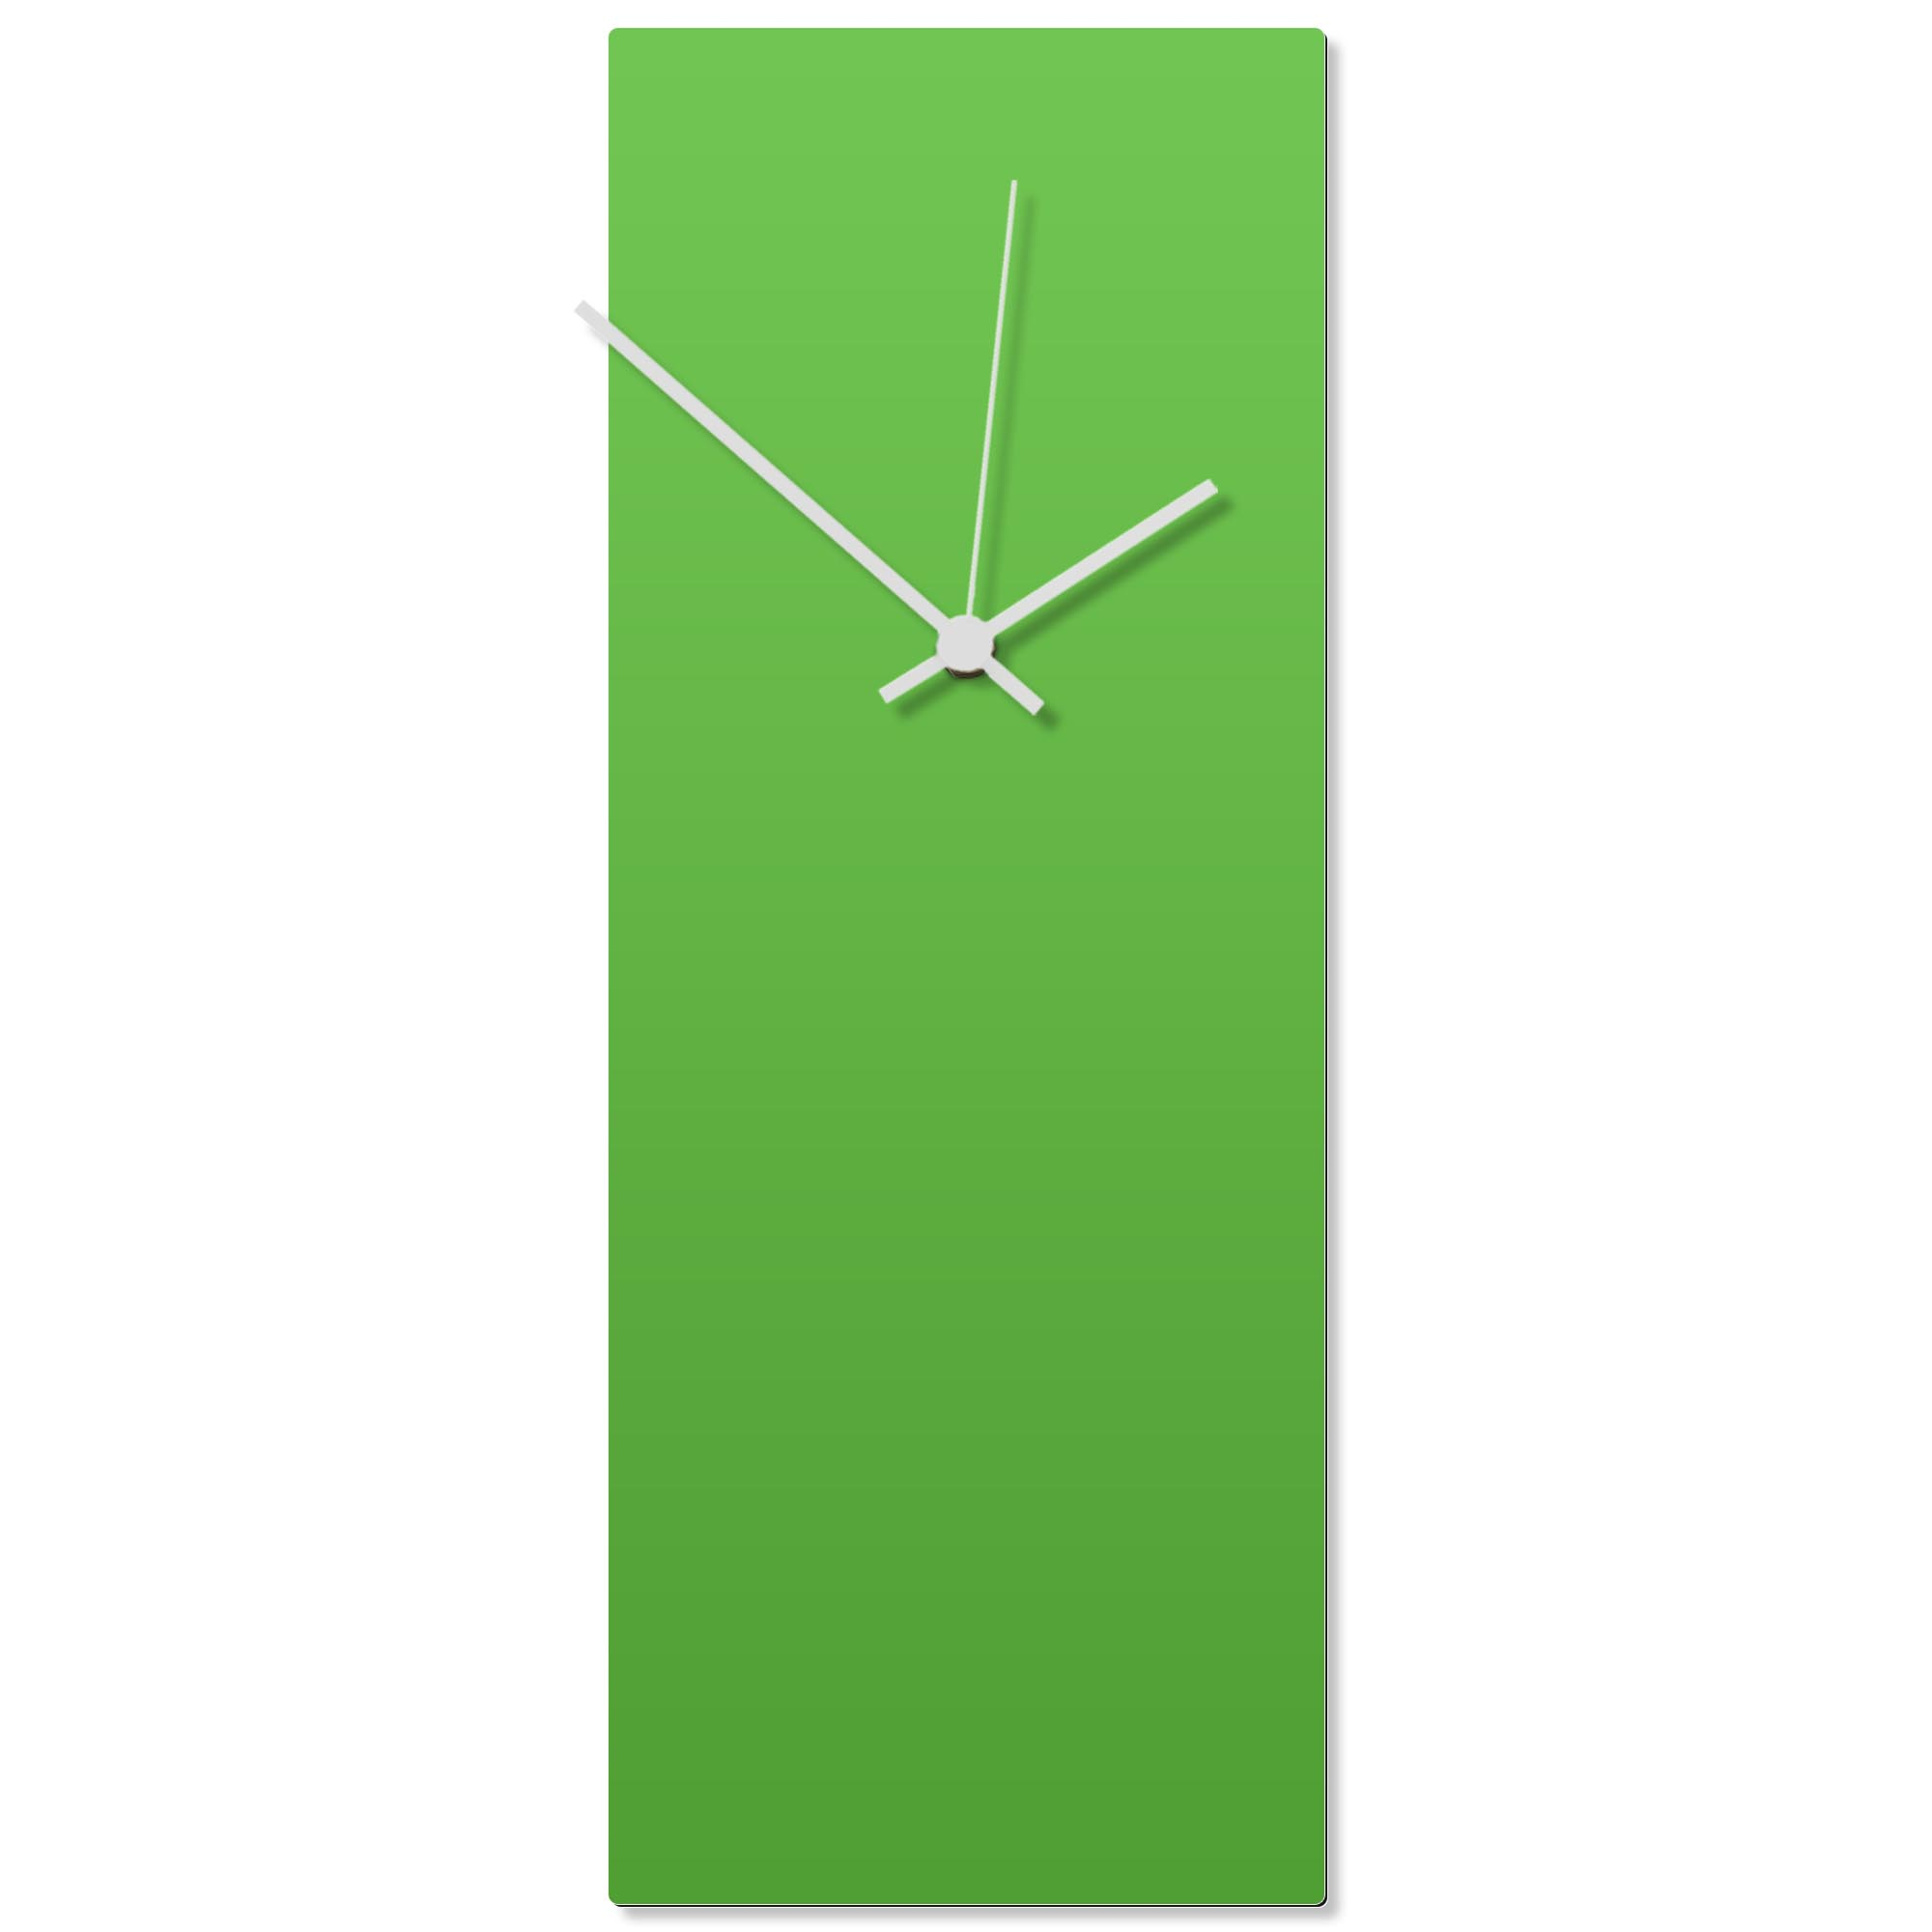 Greenout White Clock Large 8.25x22in. Aluminum Polymetal